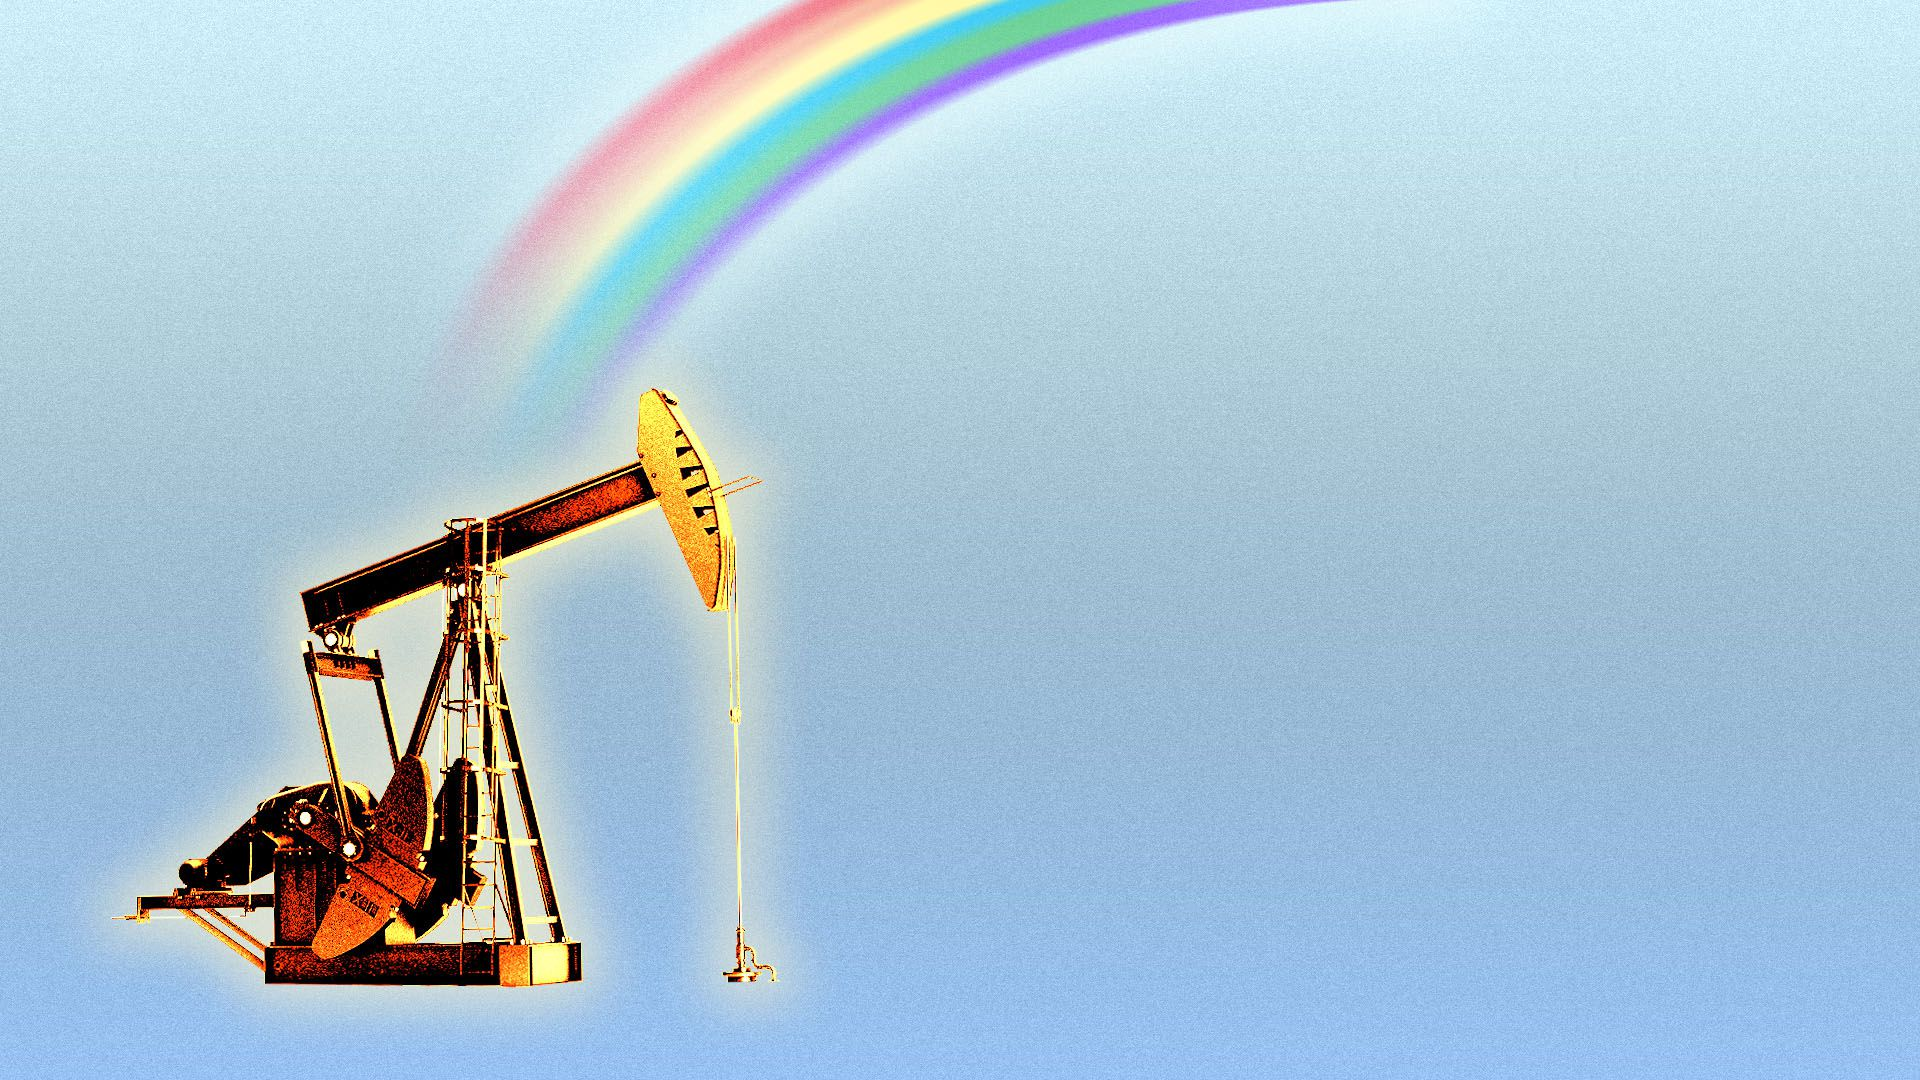 Illustration of a golden oil rig at the end of a rainbow